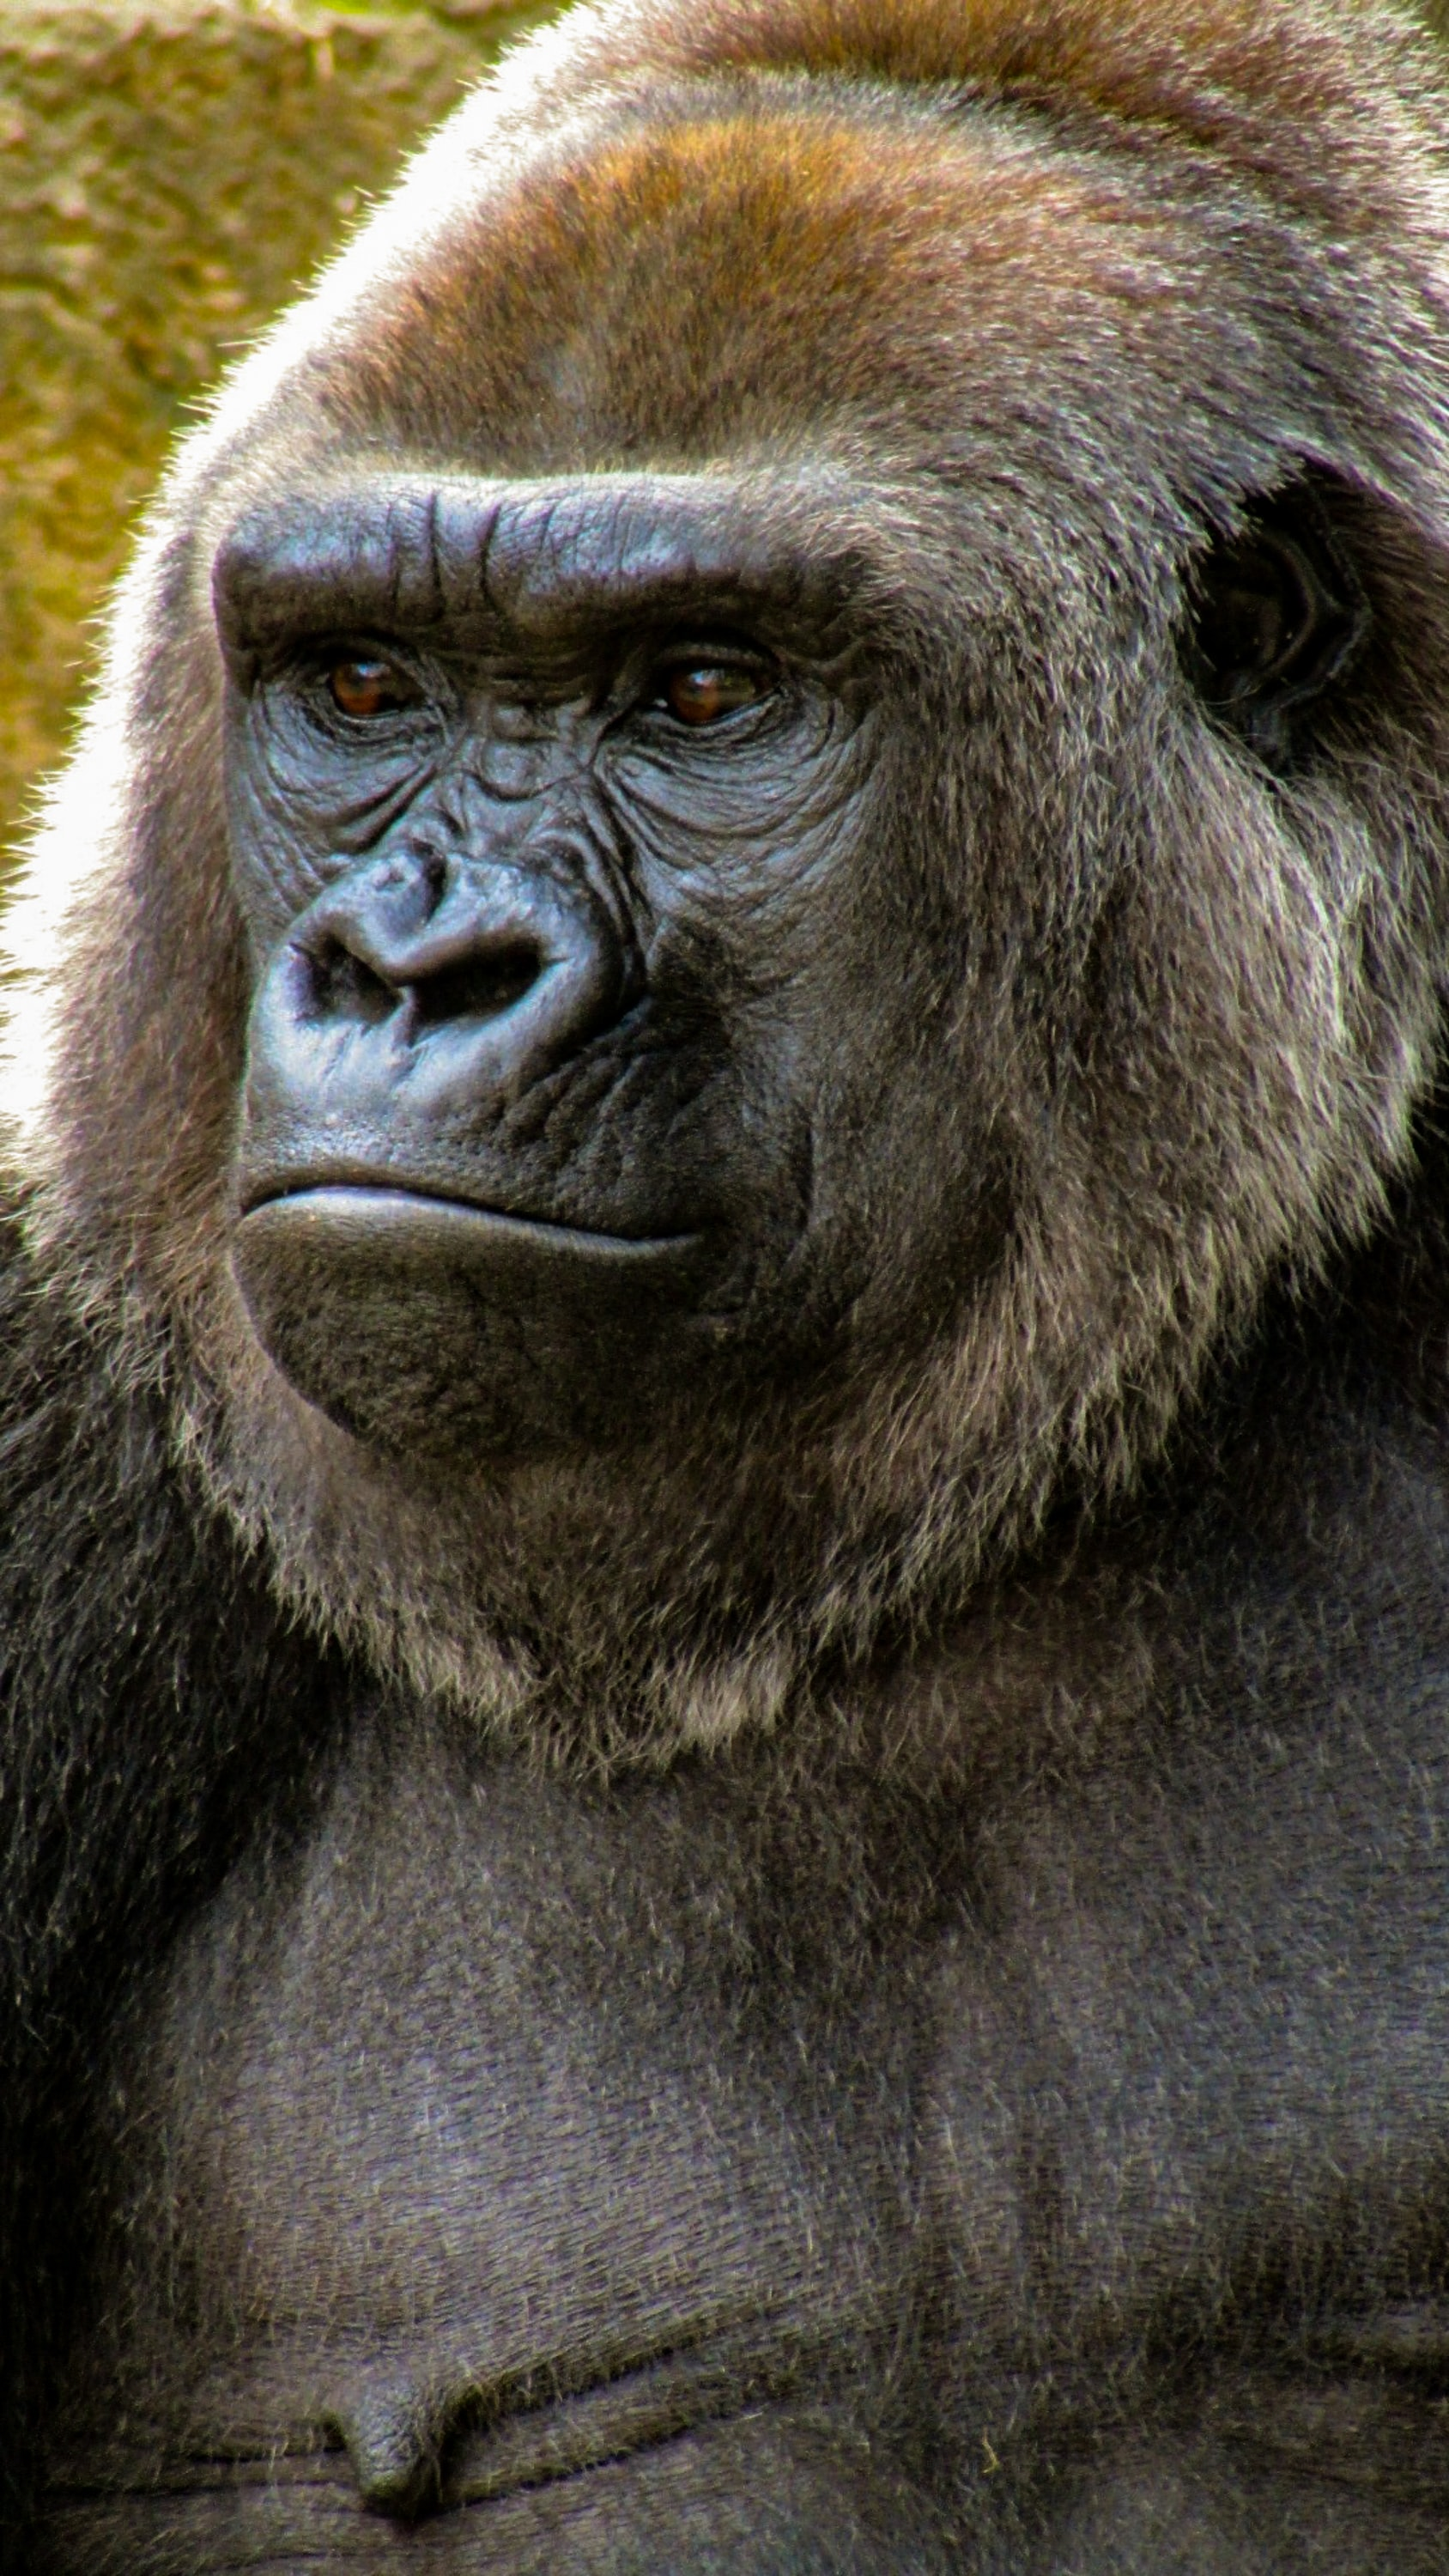 close-up photo of gorilla